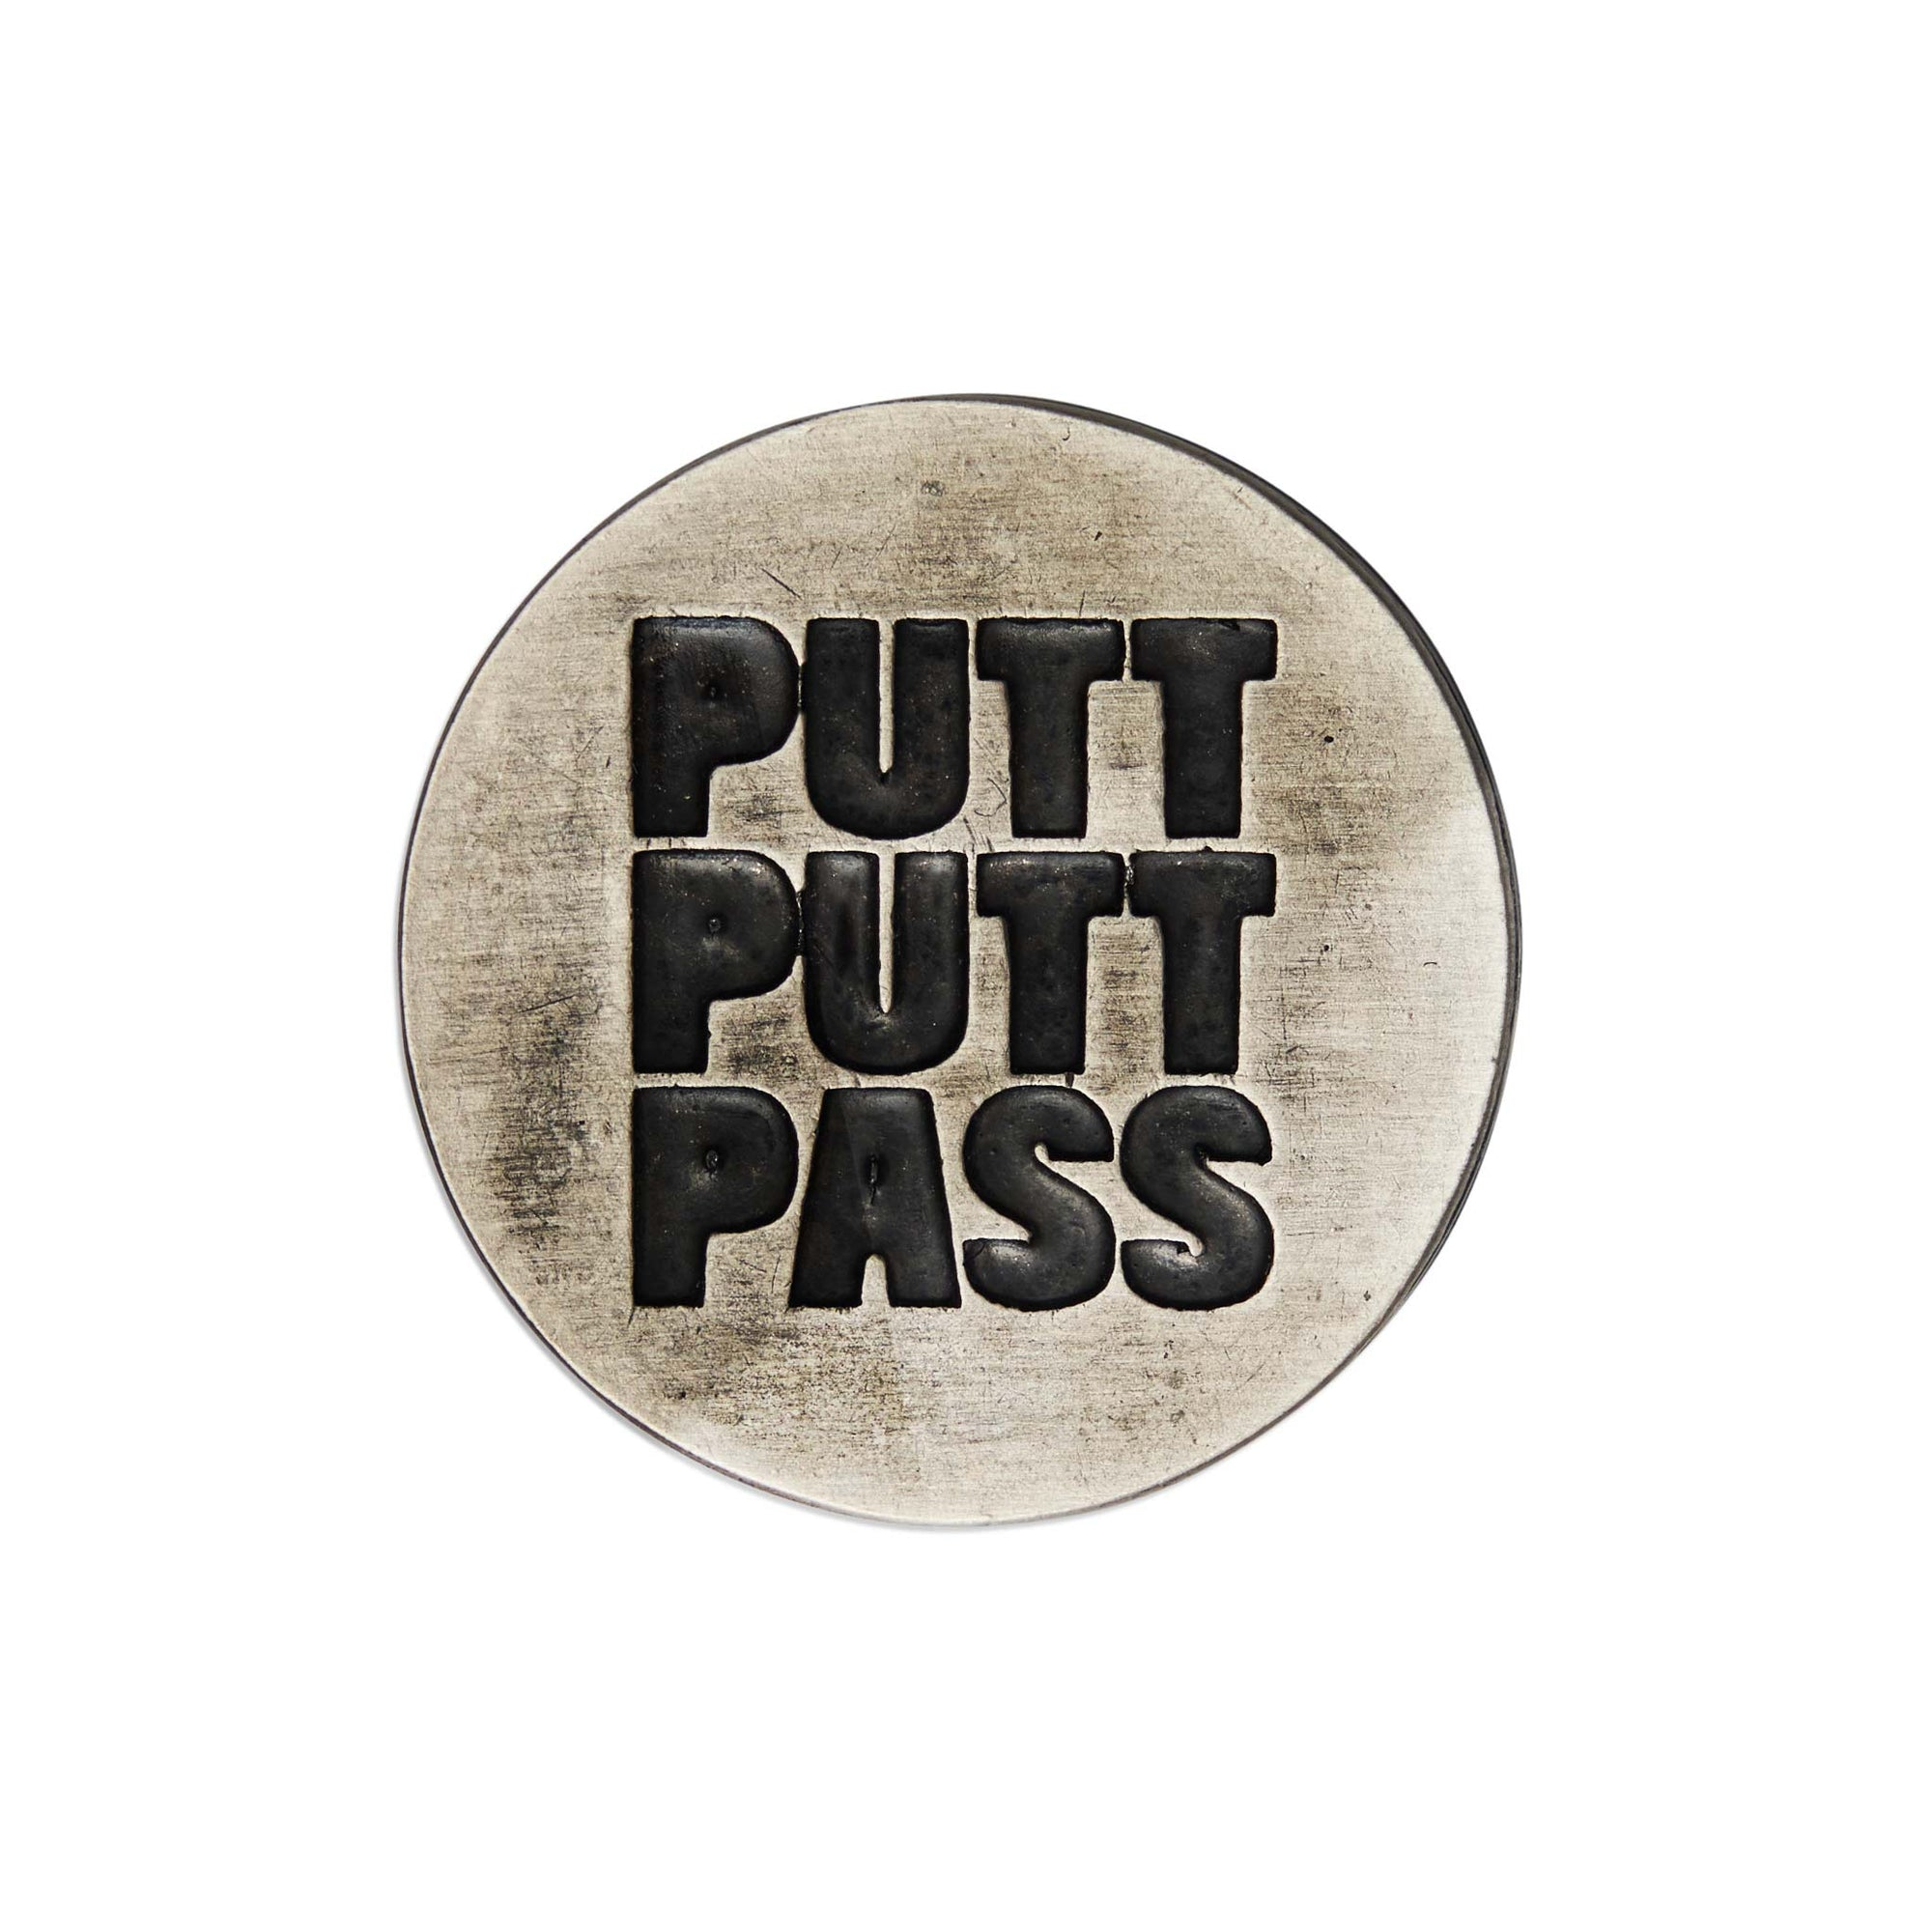 birds-of-condor-putt-putt-pass-nickel-golf-ball-marker-front